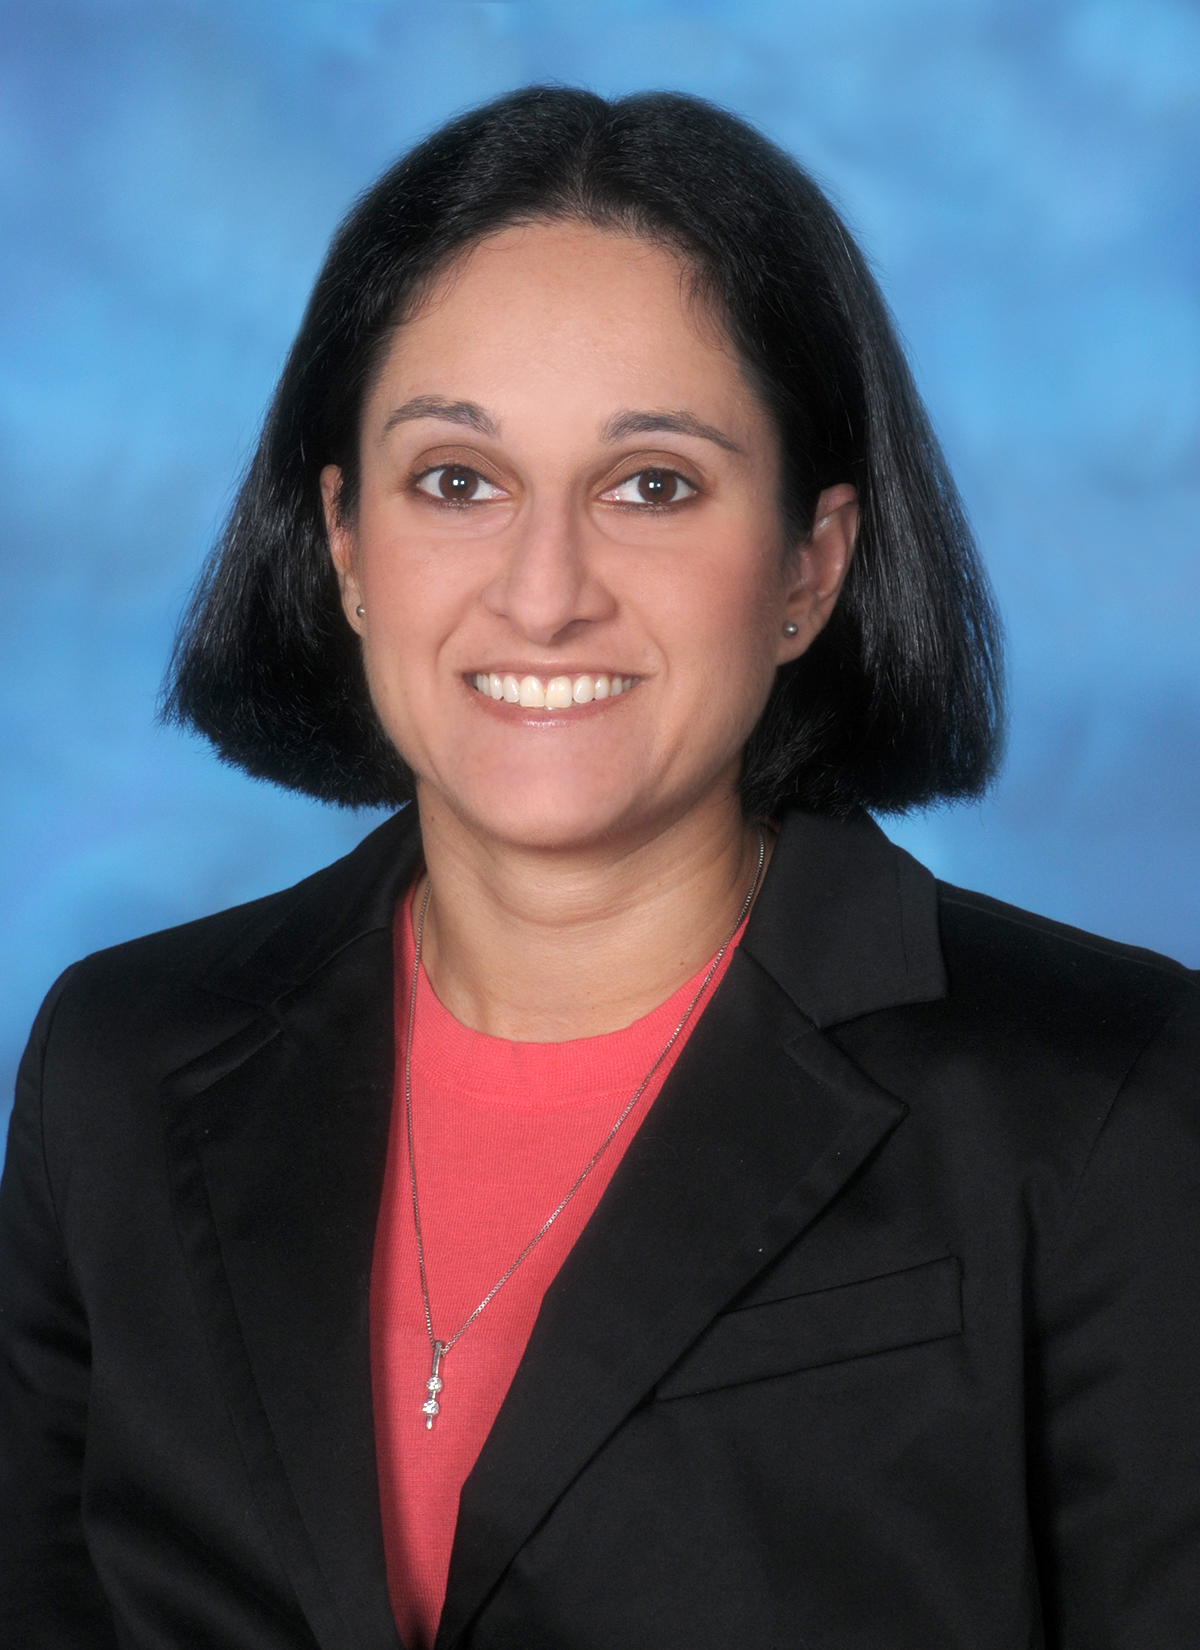 Nadia Shah, MD - Specializing in women's imaging